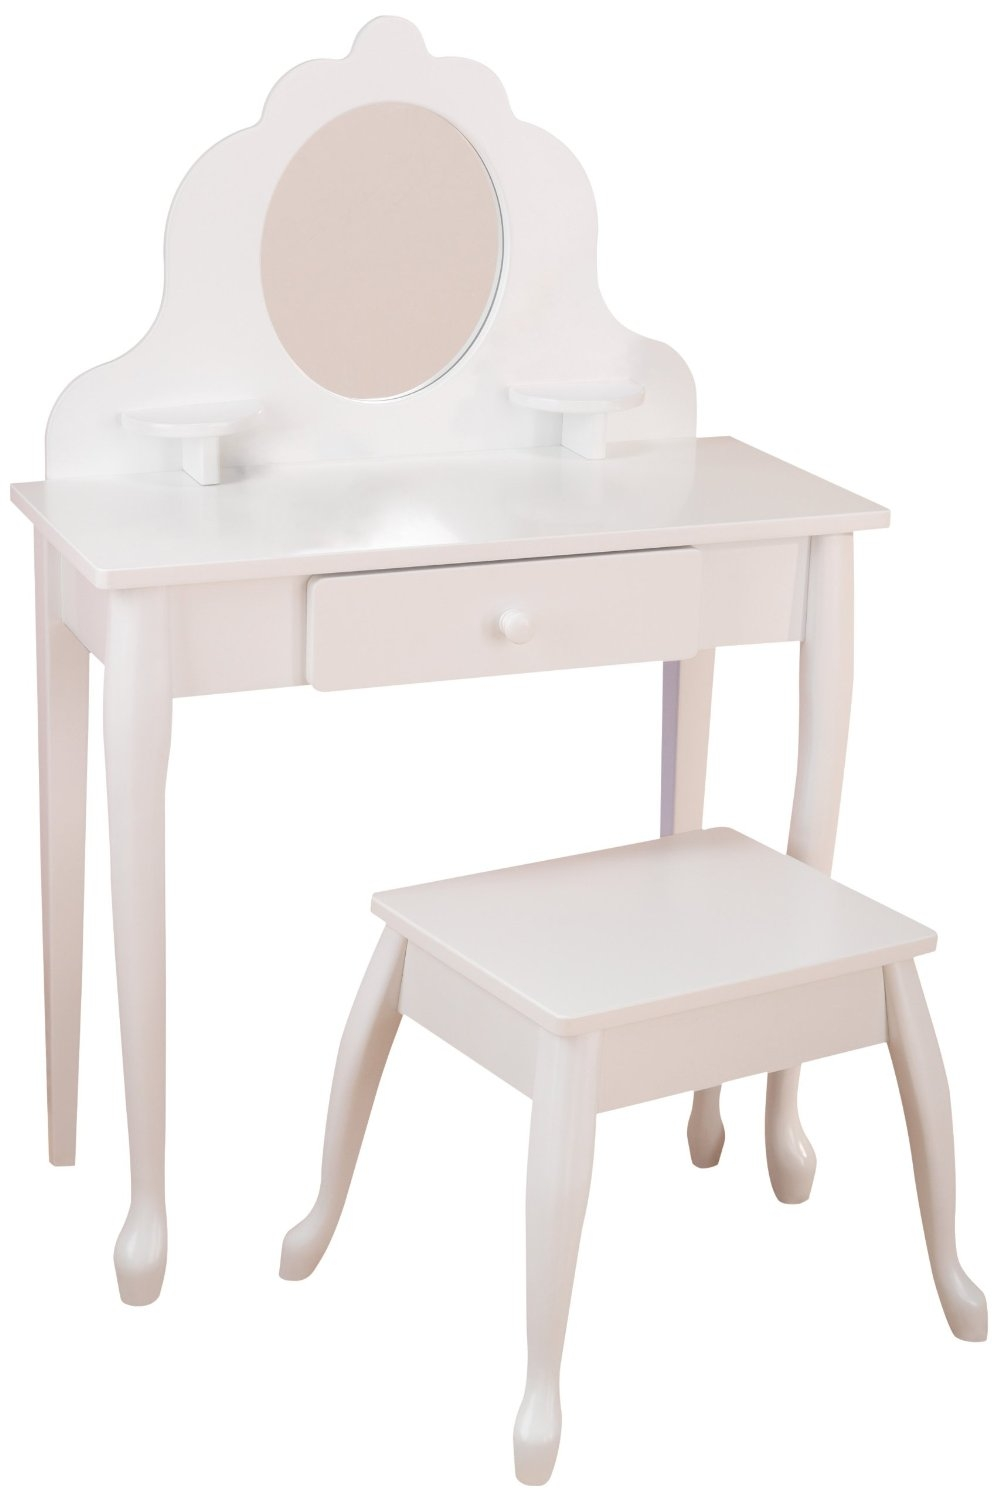 coiffeuse et tabouret blanc kidkraft 13009. Black Bedroom Furniture Sets. Home Design Ideas